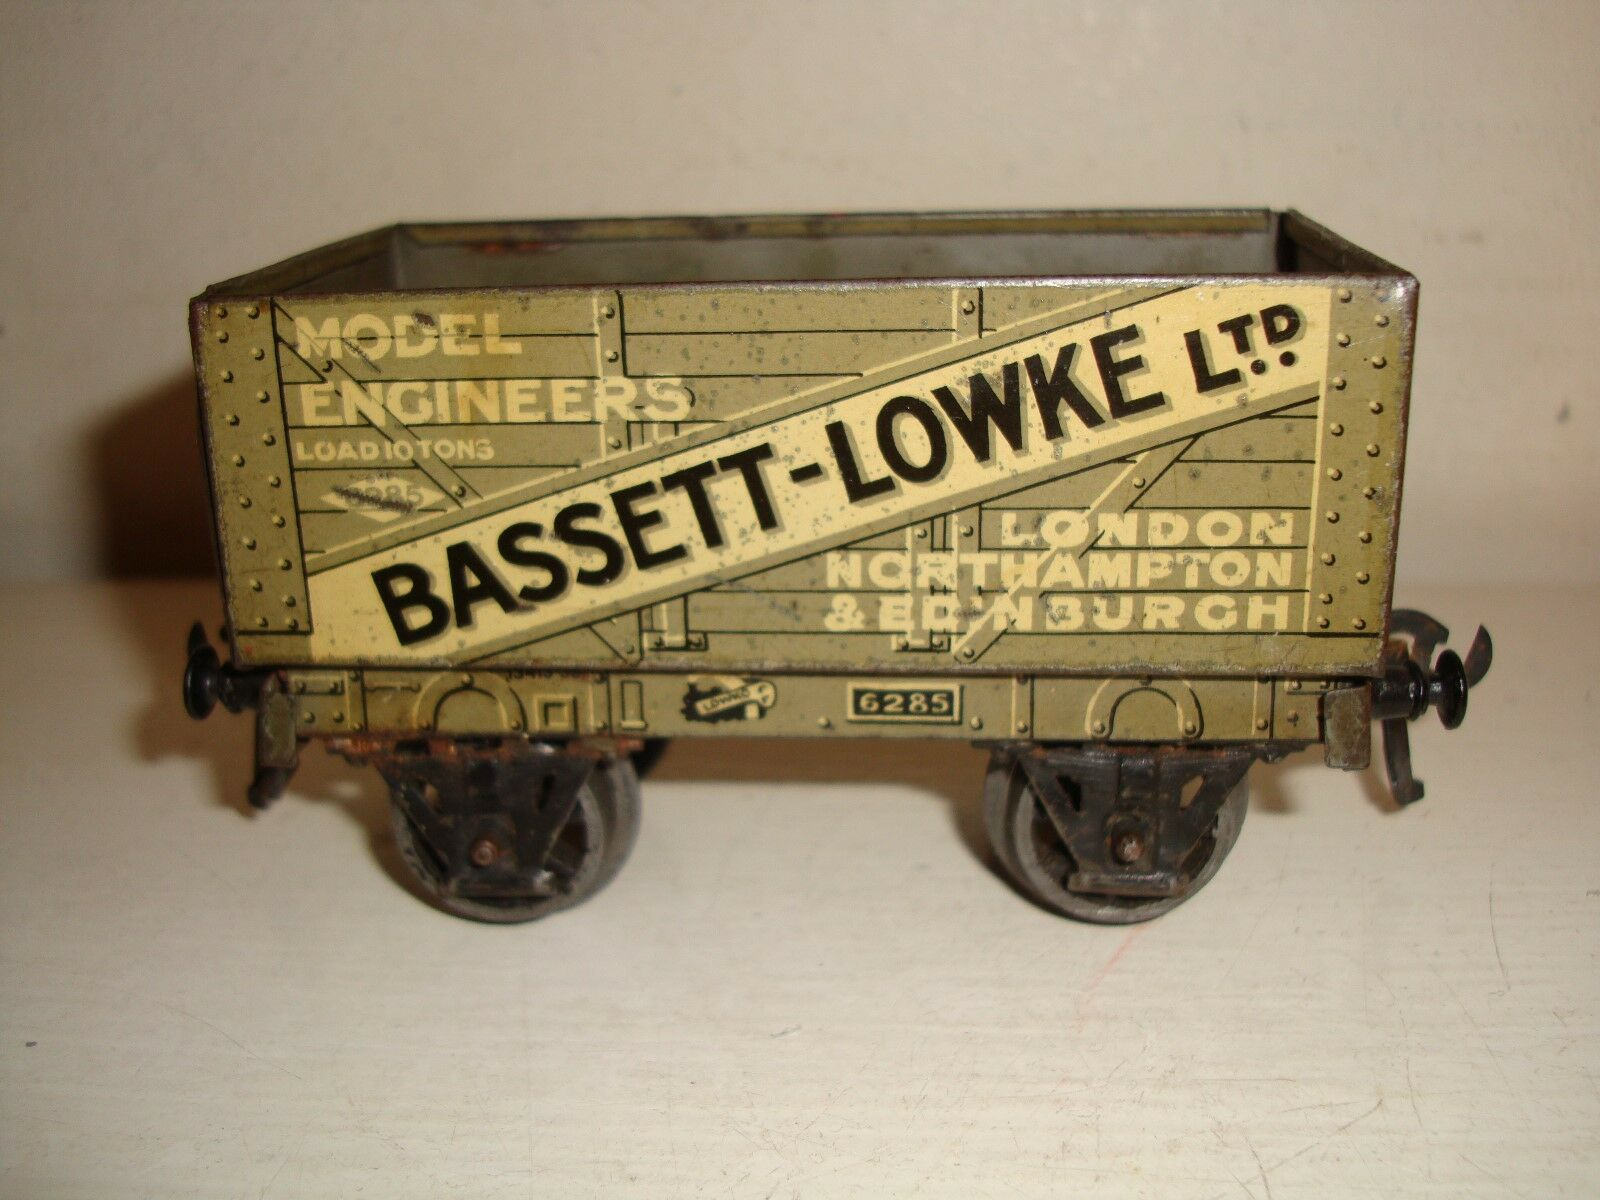 Bassett-Lowke O - 7plk Open Wagon  Bassett-Lowke model engineers(6285)good-c1928